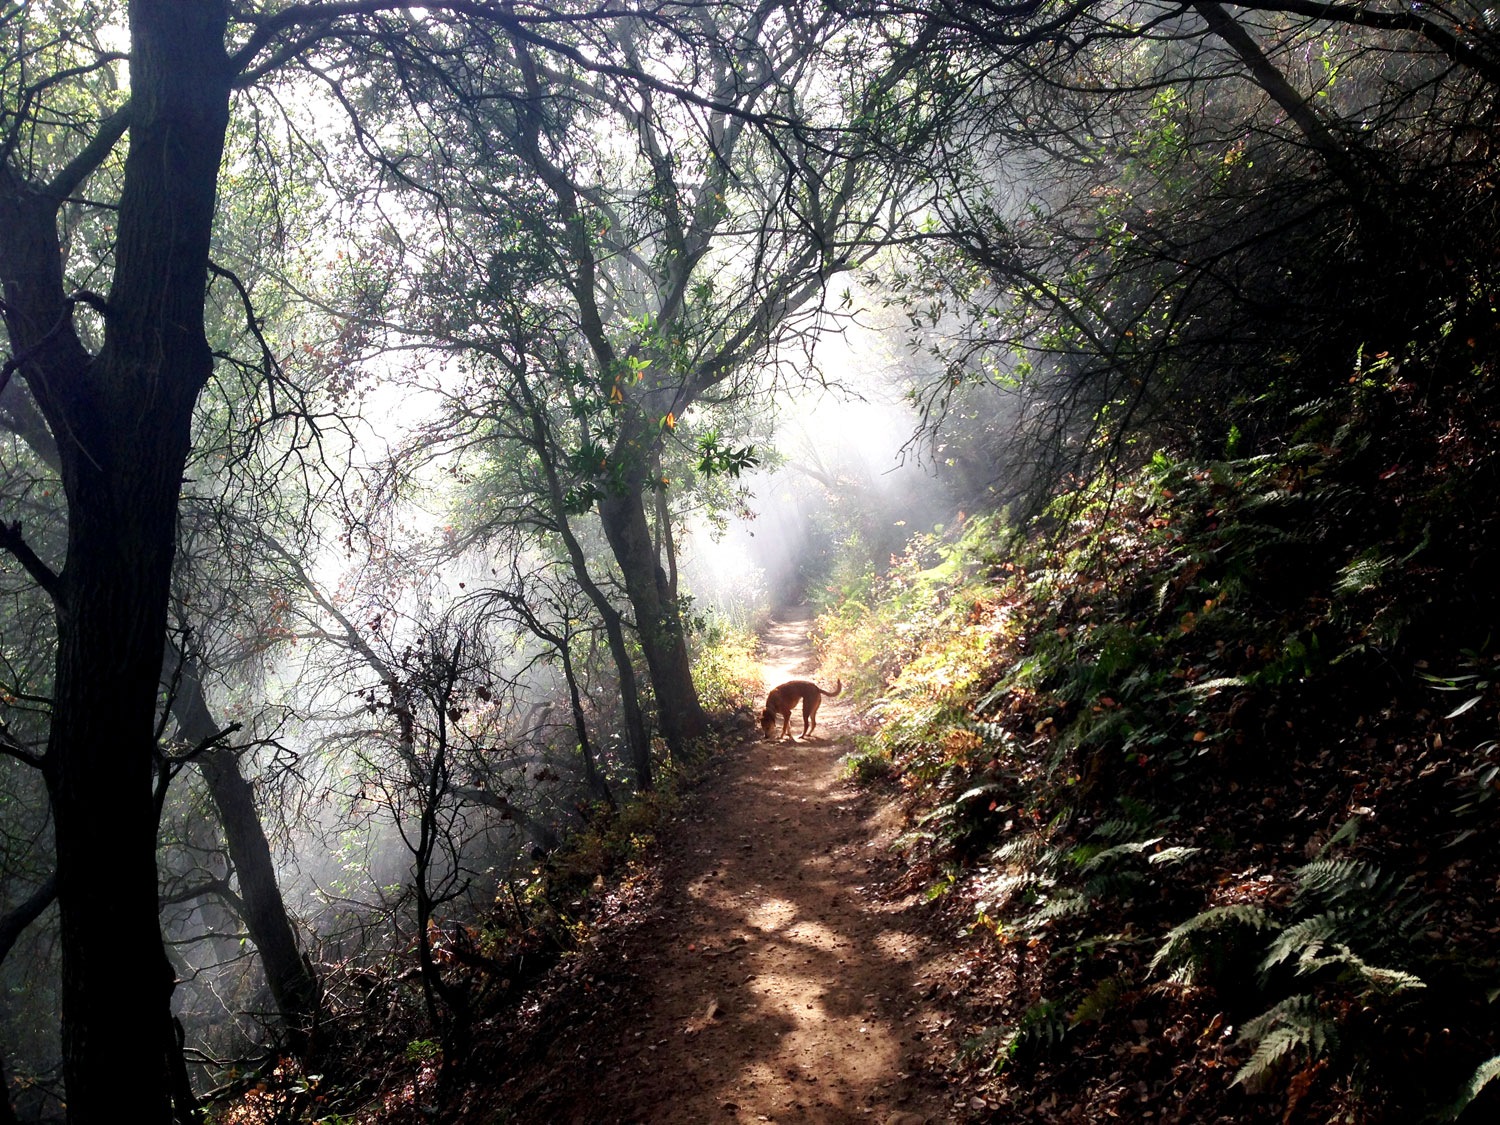 Zoe 'n Me {a dog blog} Magical Forest | Jordan benShea | Santa Barbara, California